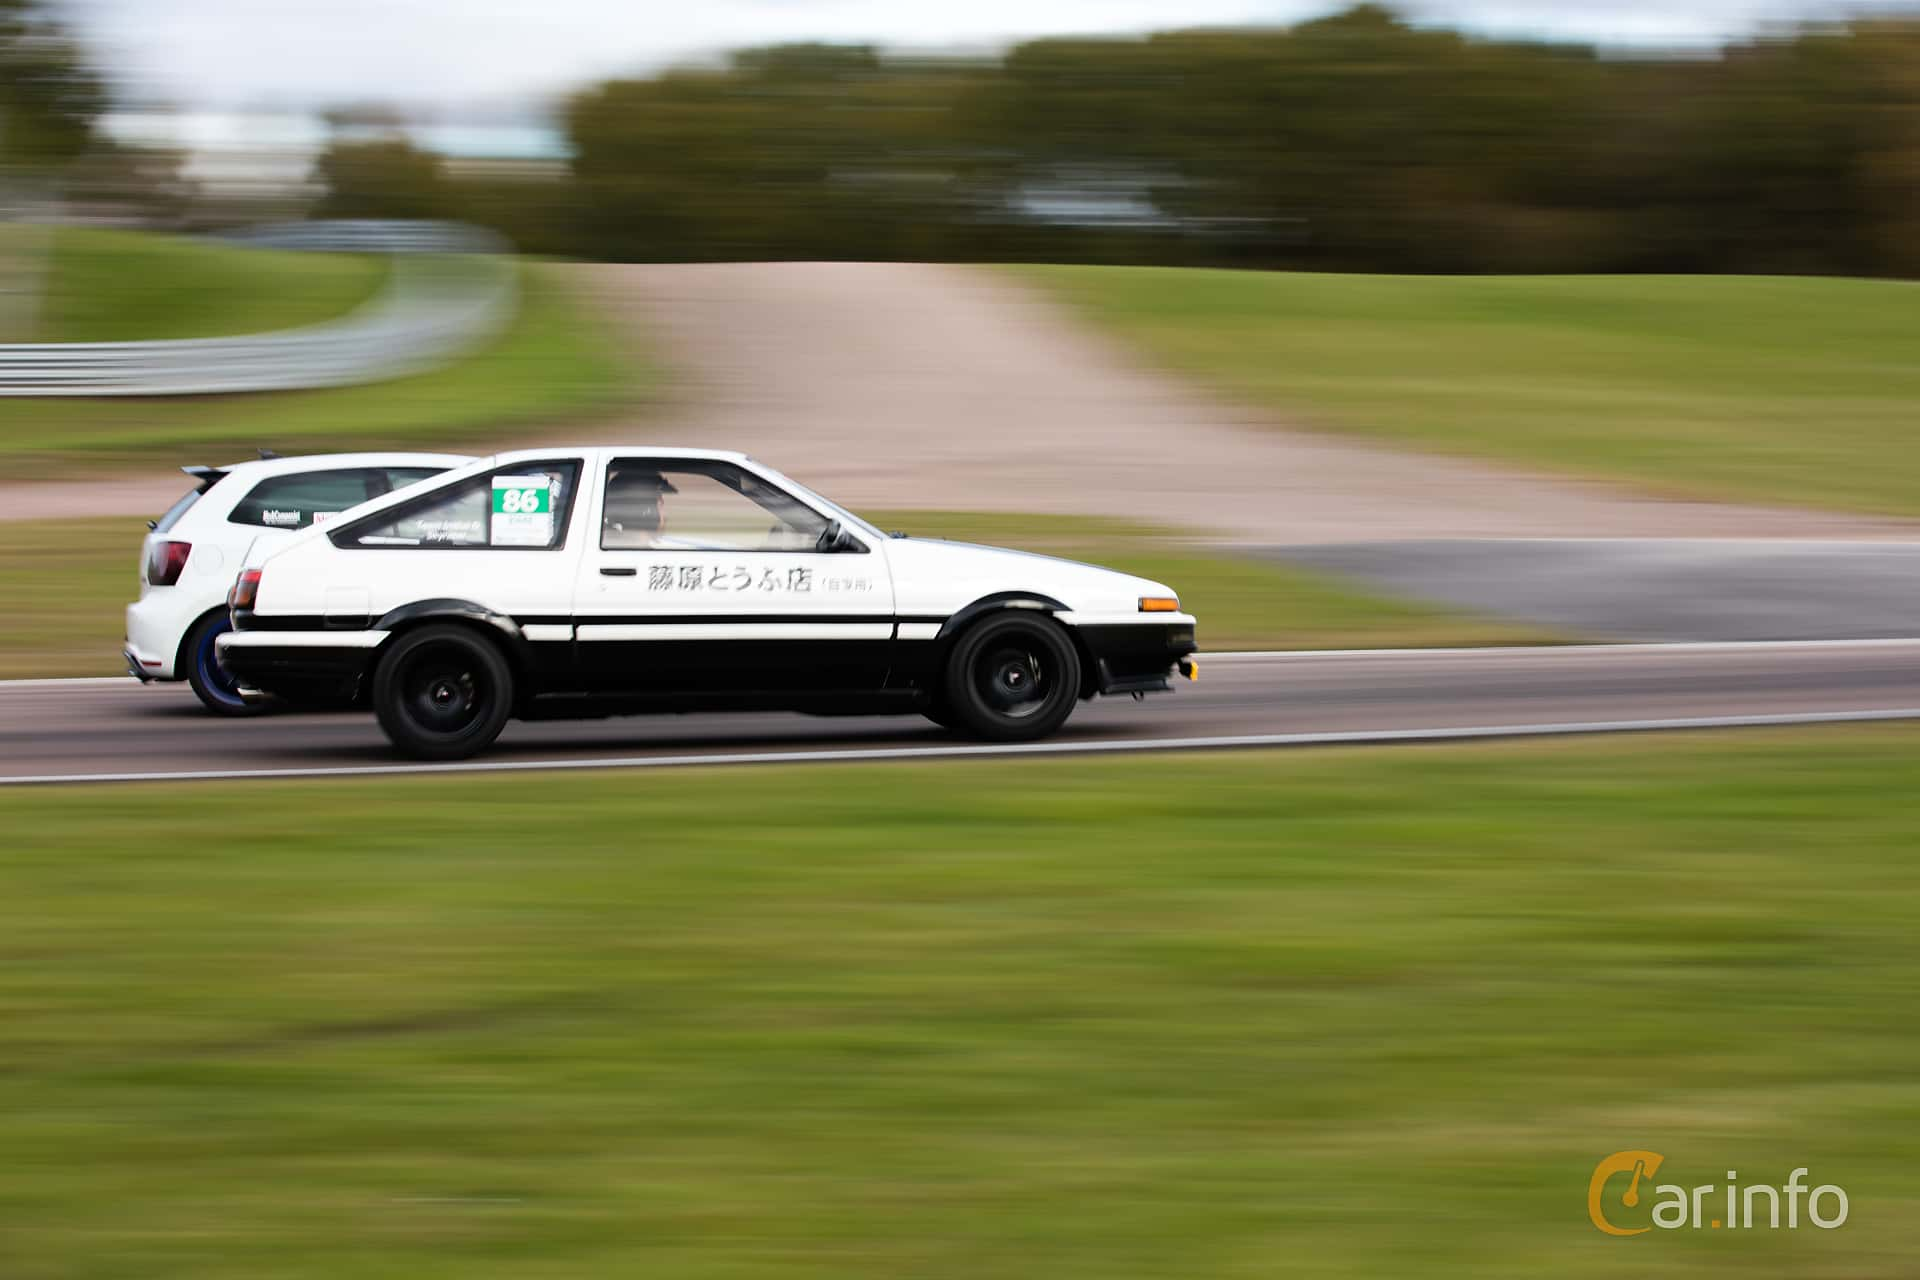 Toyota corolla 3 door hatchback side time attack knutstorp 1 184284g toyota corolla 3 door hatchback 16 manual 116hp 1986 at time attack knutstorp publicscrutiny Images